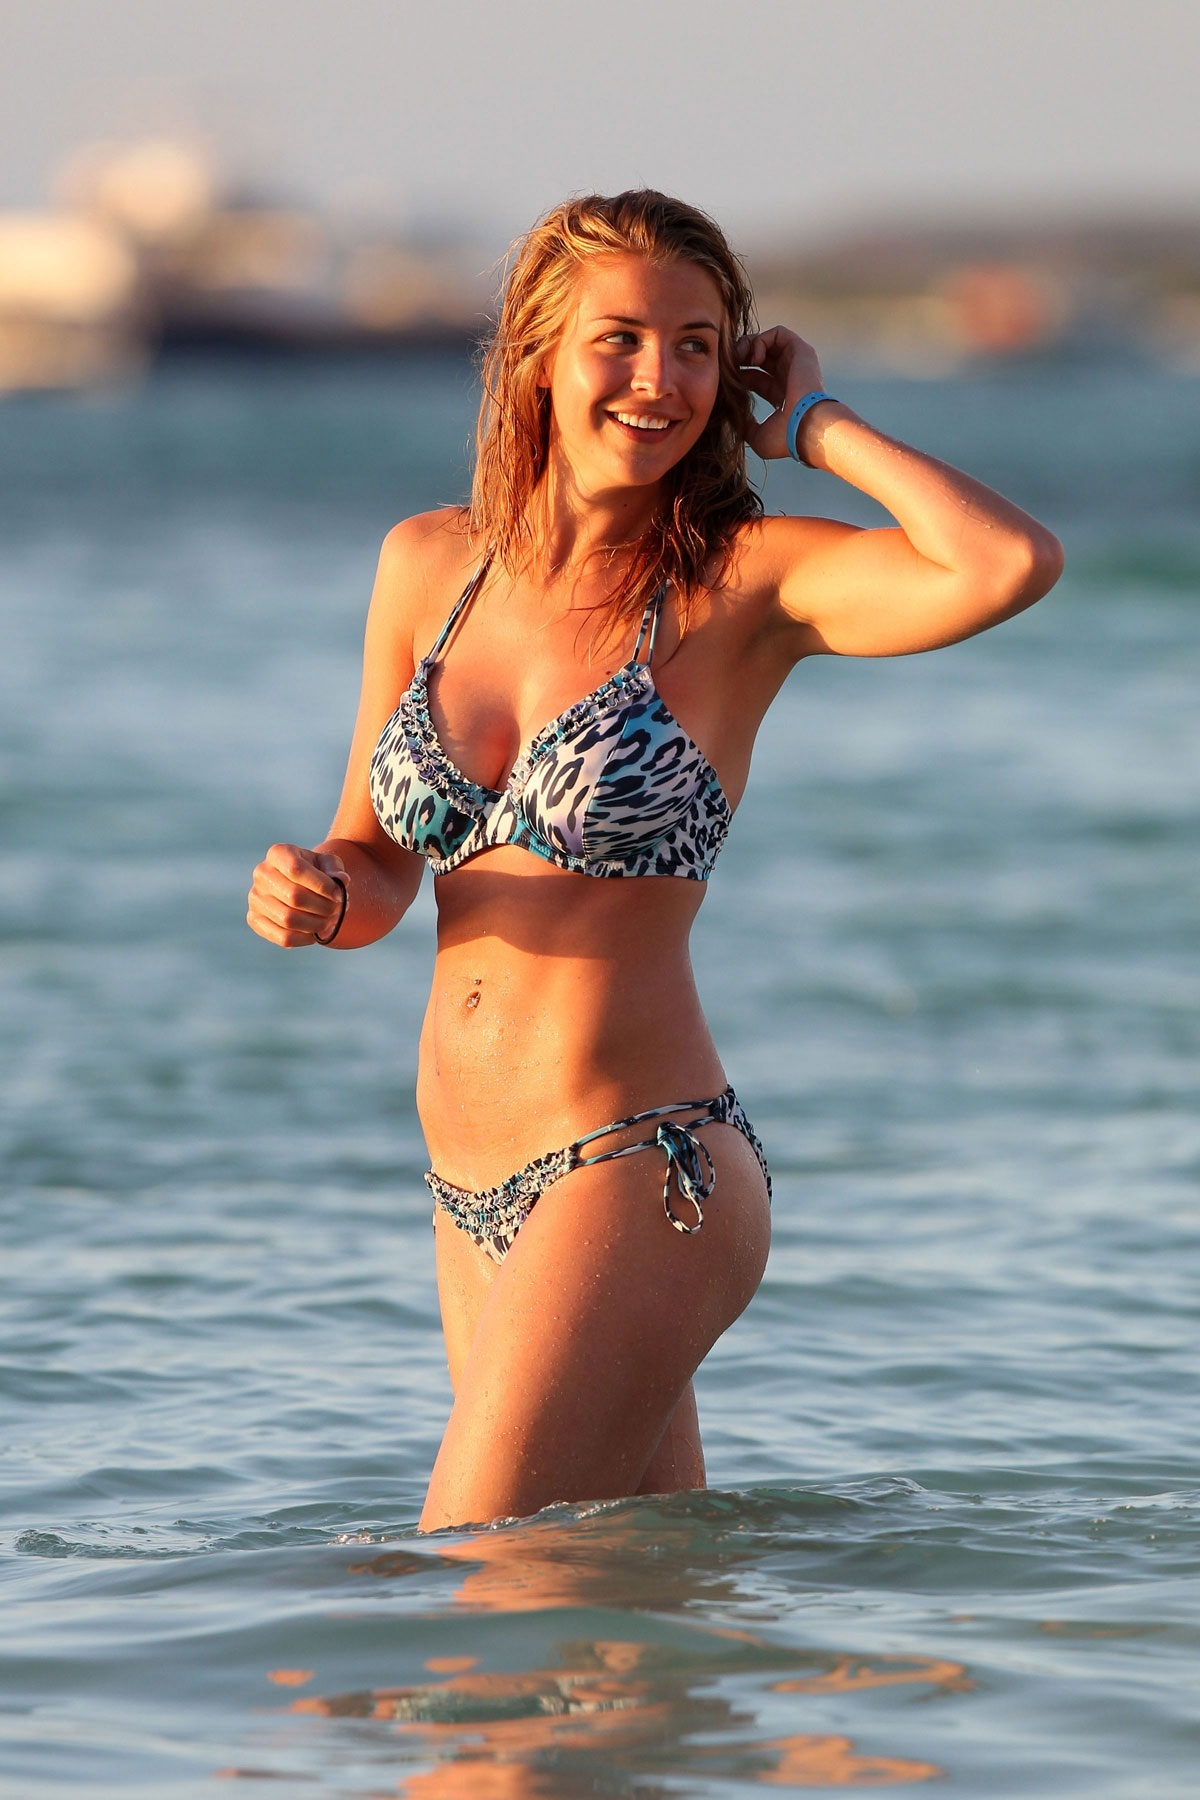 Gemma Atkinson In Bikini On Beach In Aruba Films